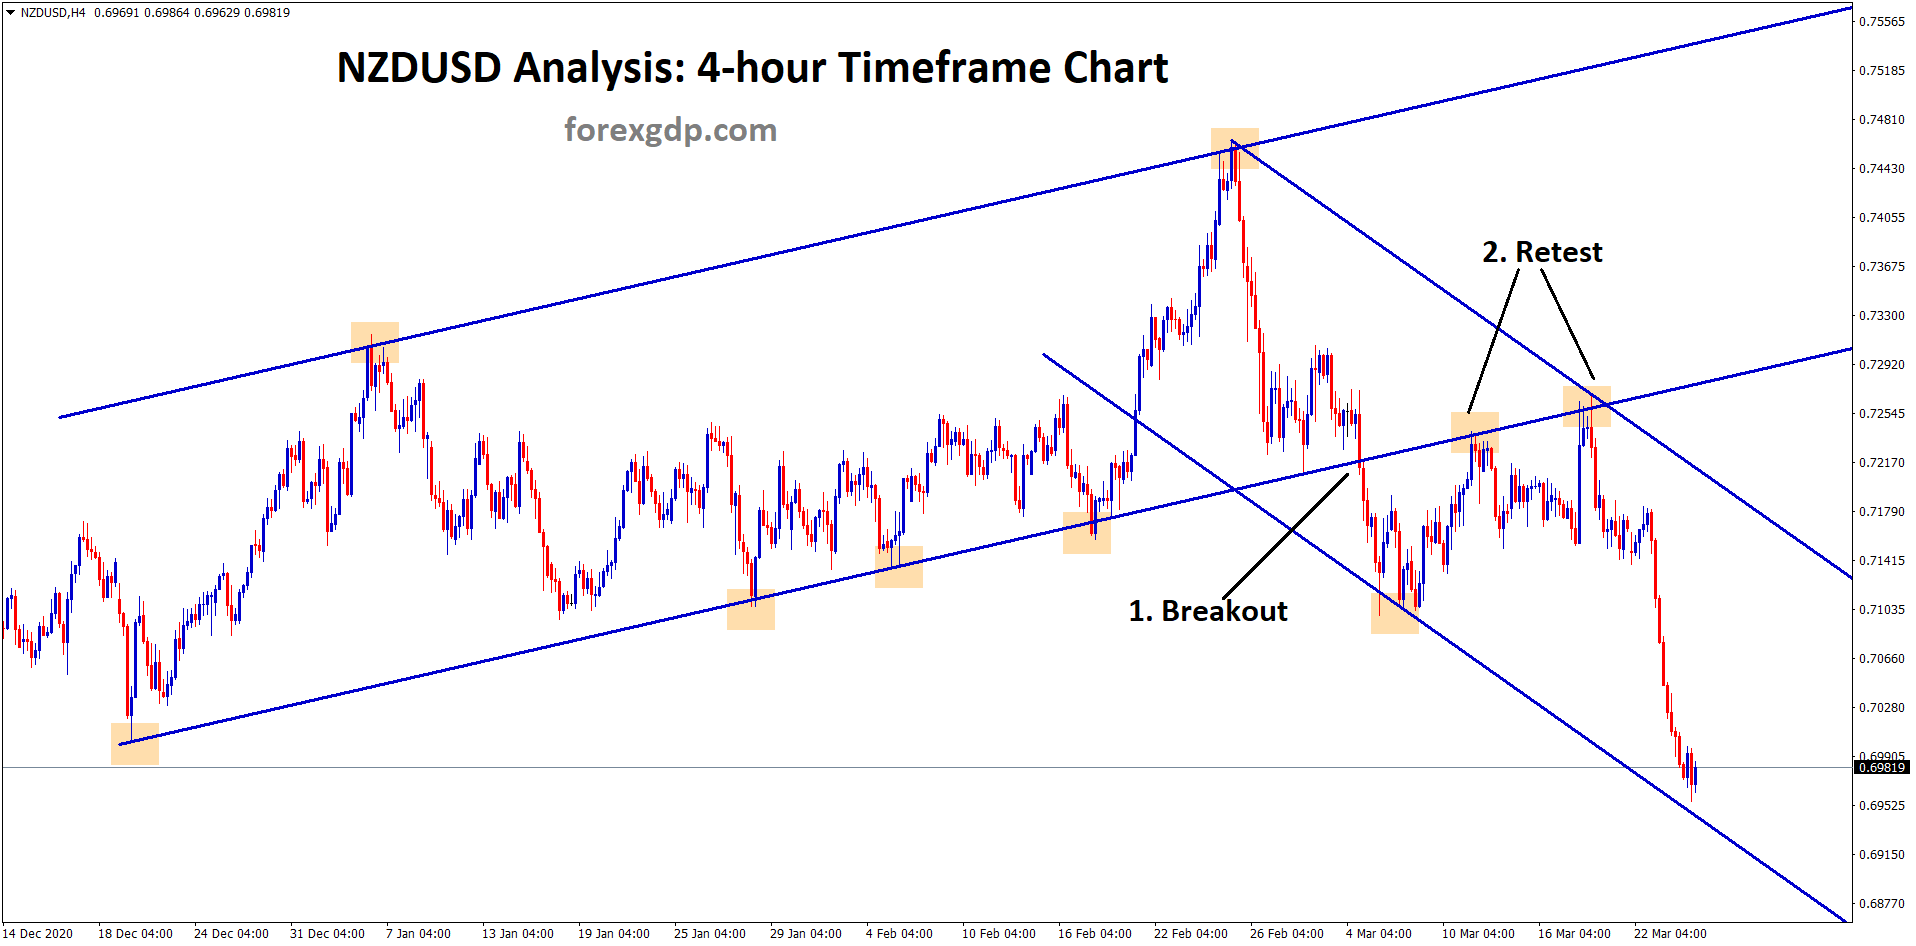 newzealand dollar breakout retest and moving in strong downtrend